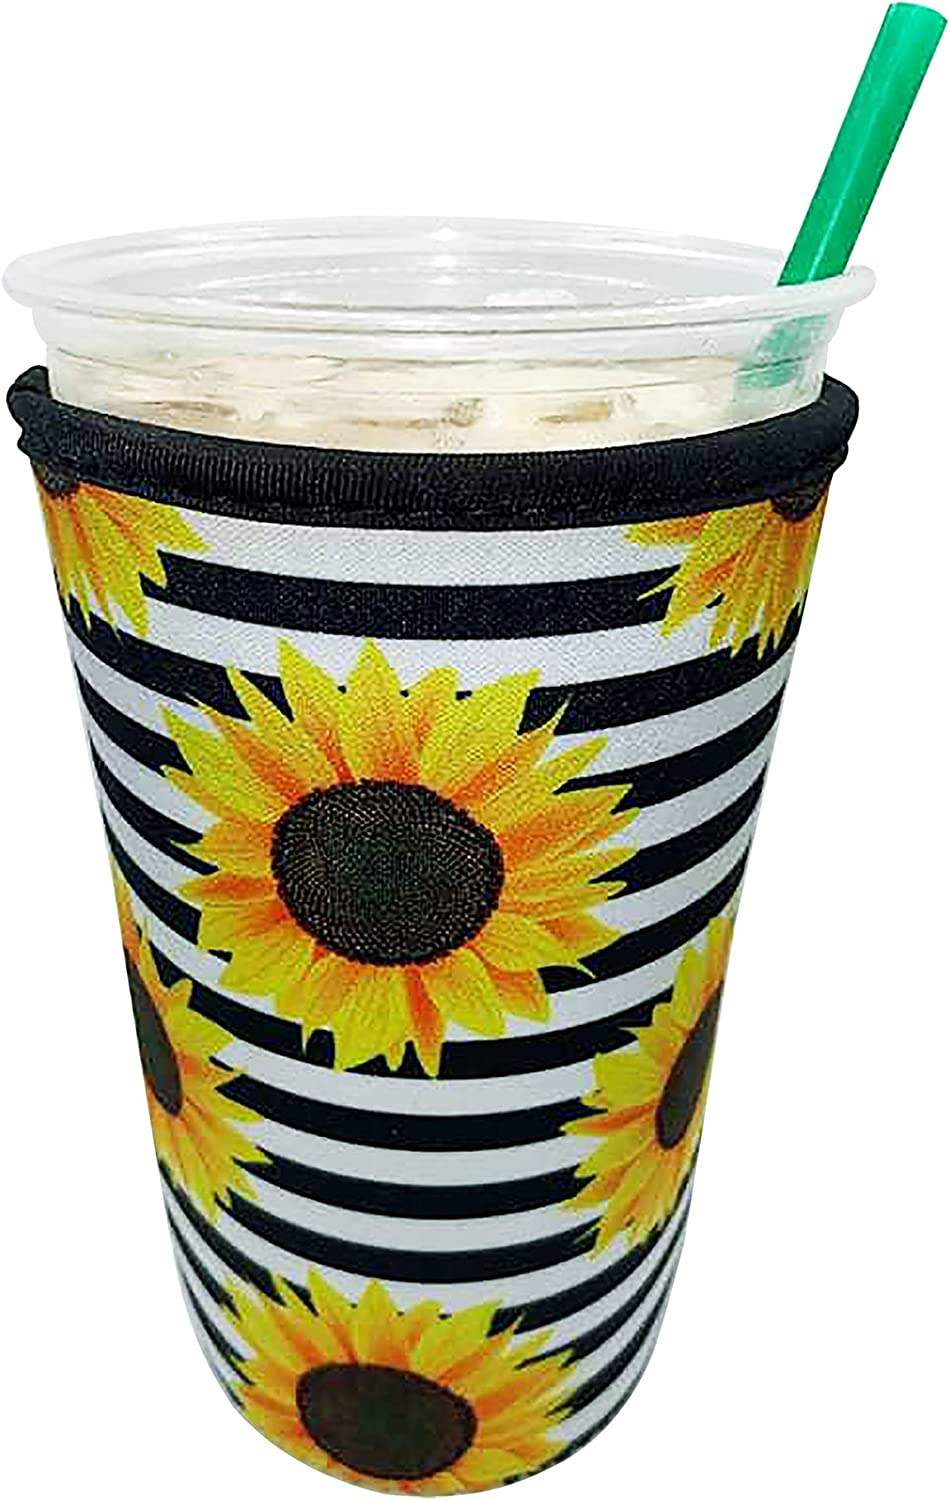 Reusable Iced Coffee Cup Sleeve for Cold Beverages - Insulated Sleeve (Sunflower, Small)